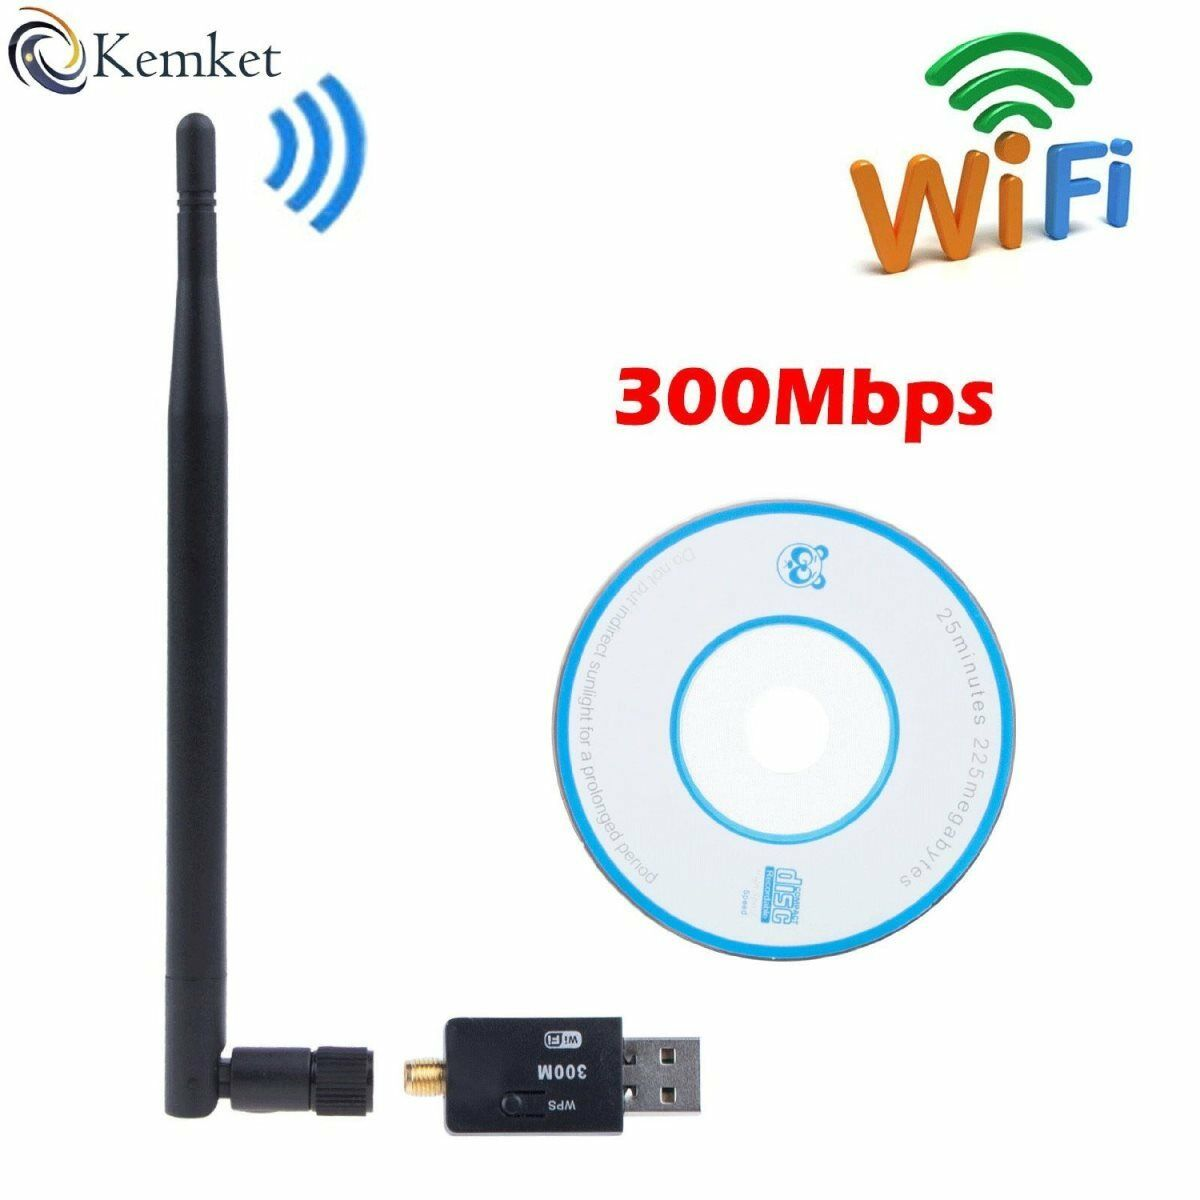 Wifi Usb Adapter- 300 Mbps With Antenna Usb 2.0 & Mini Dongle 802.iin